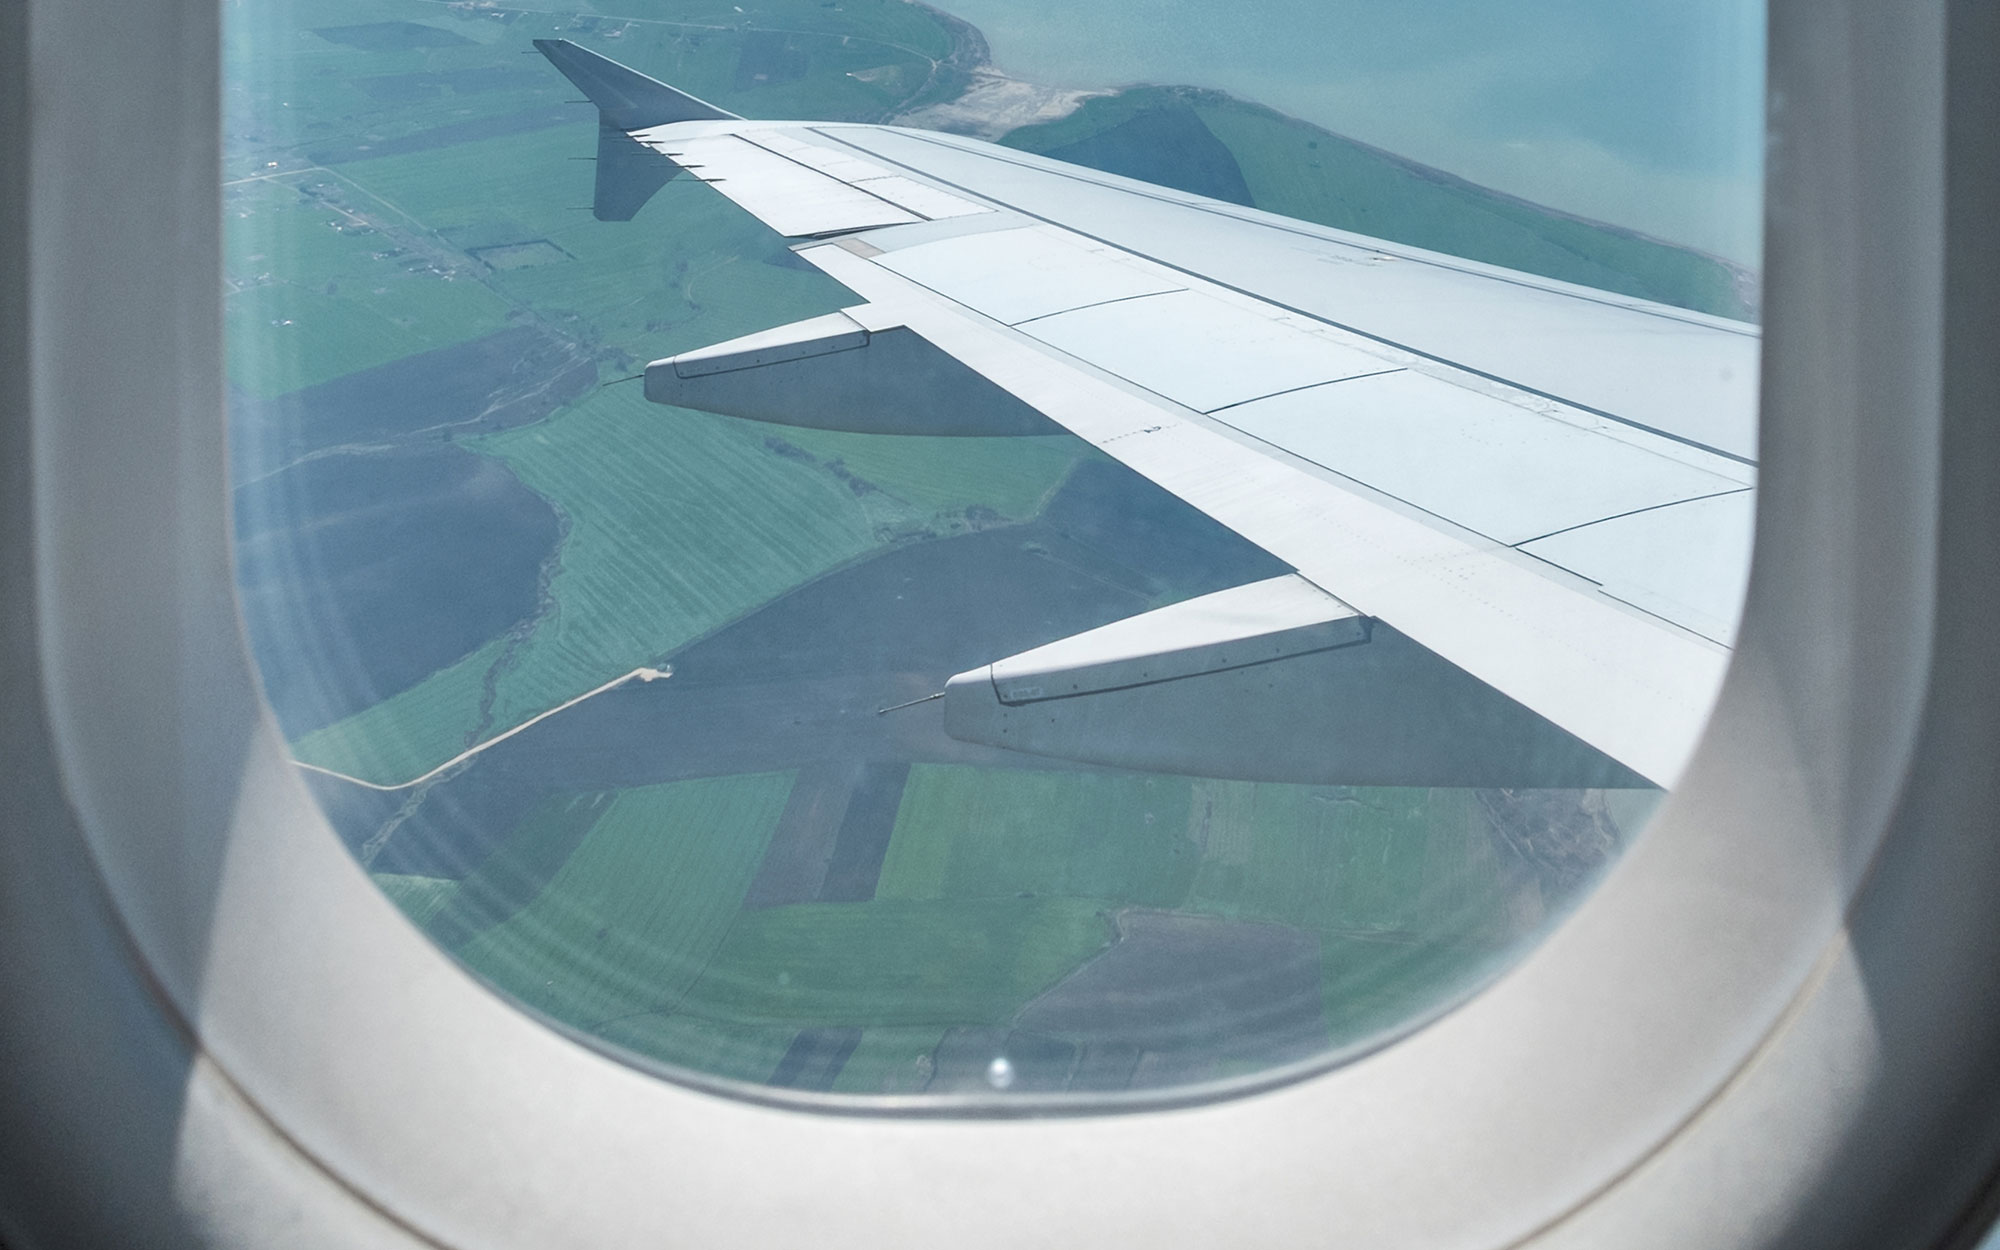 Why Do Airplane Windows Have Holes in Them? | Travel + Leisure